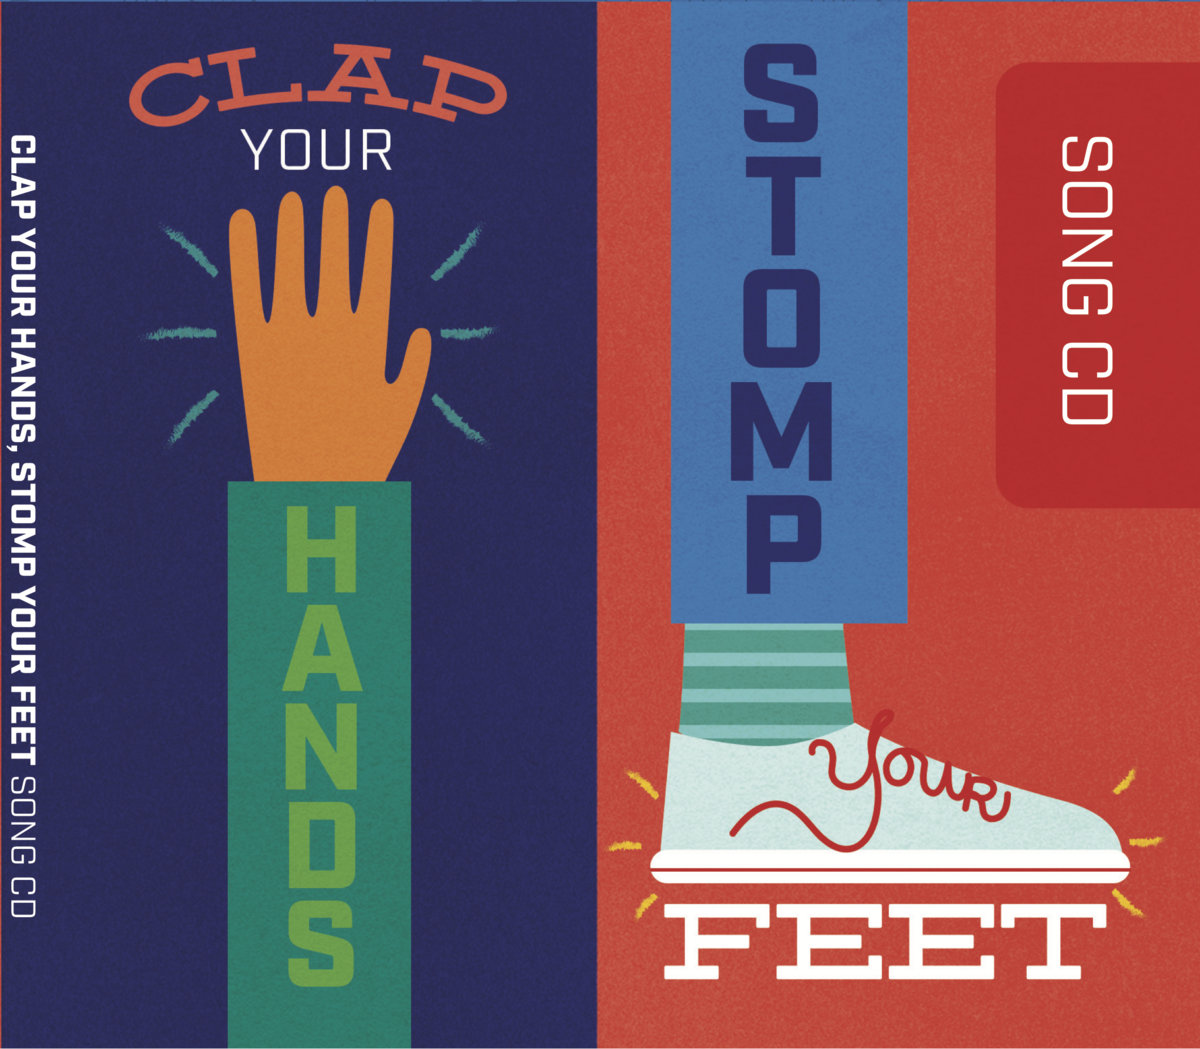 Clap Your Hands, Stomp Your Feet | Sojourn